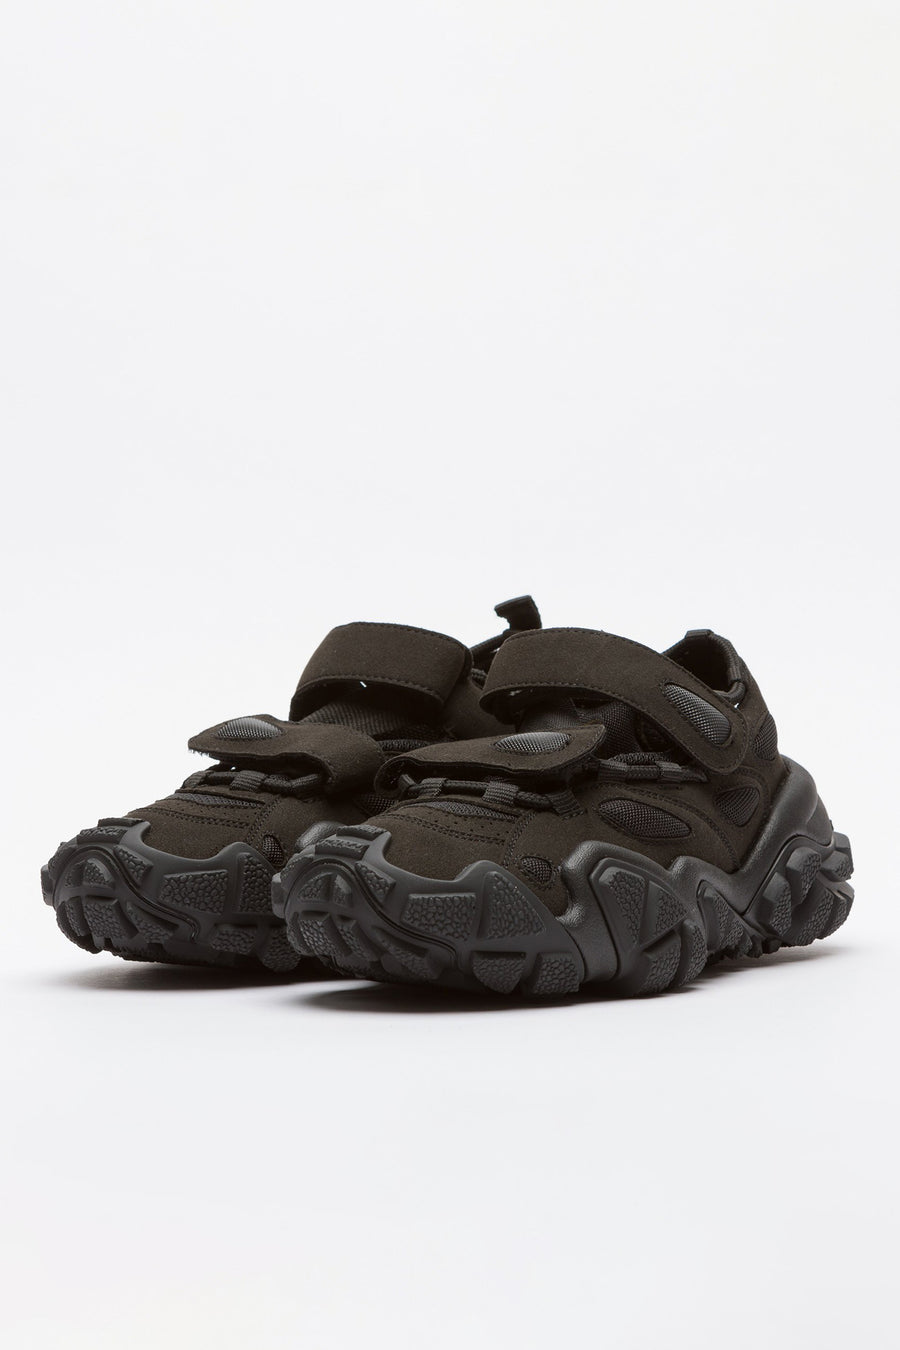 Acne Studios Bryz W Open Velcro Sneakers in Black - Notre